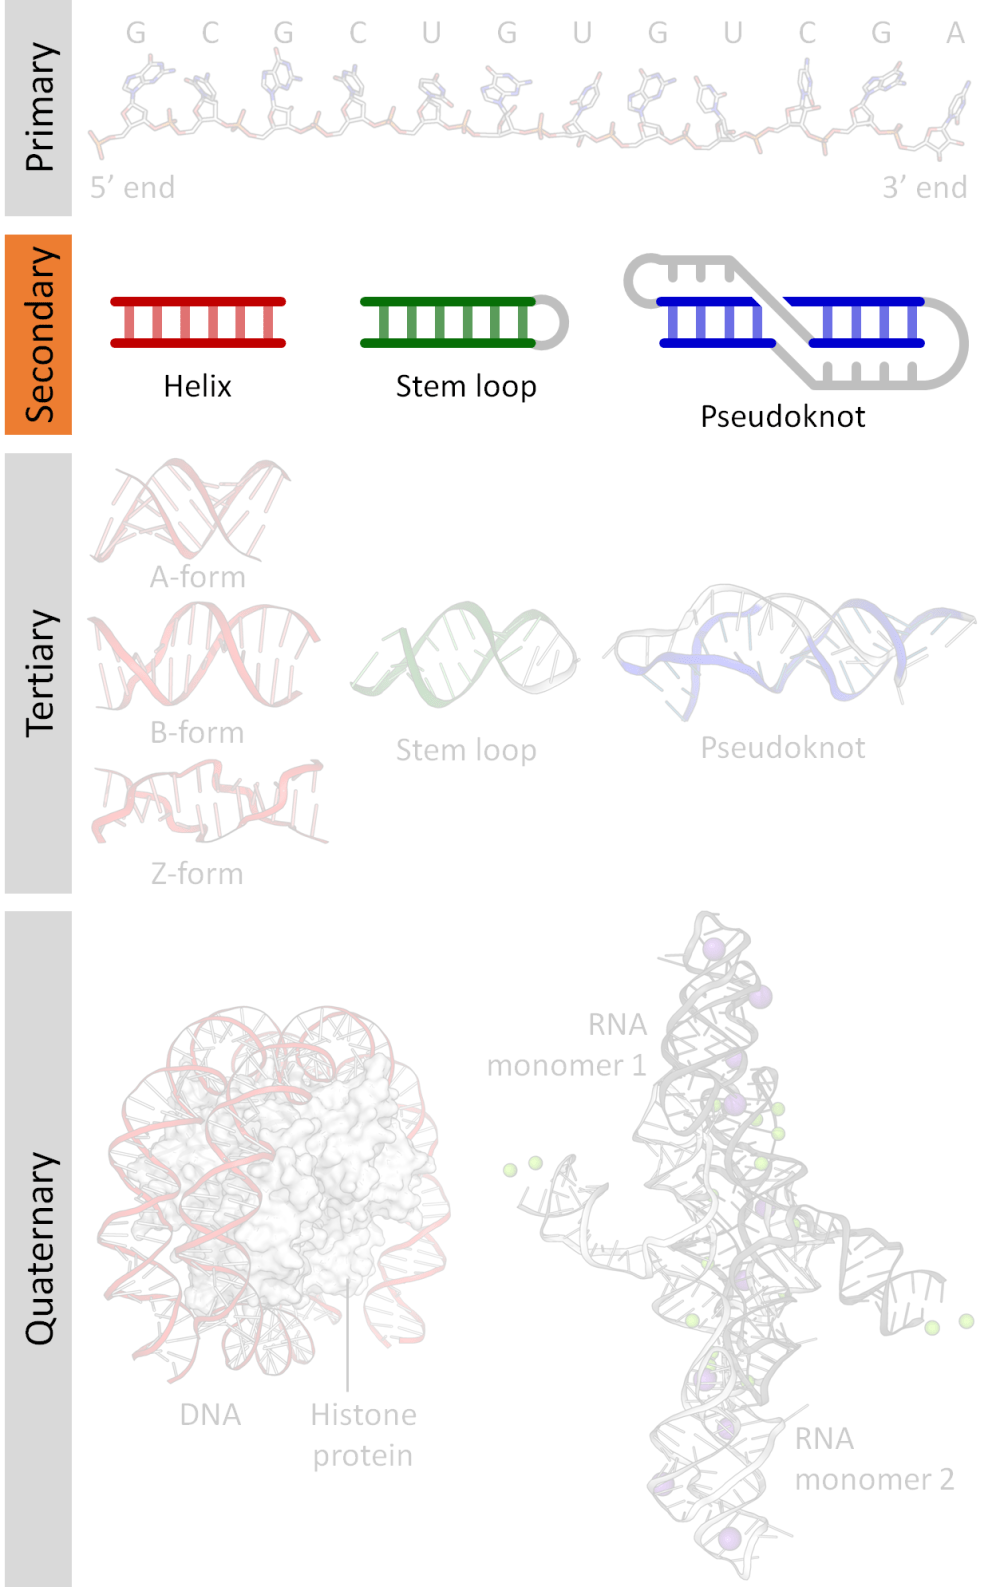 medium resolution of nucleic acid secondary structure